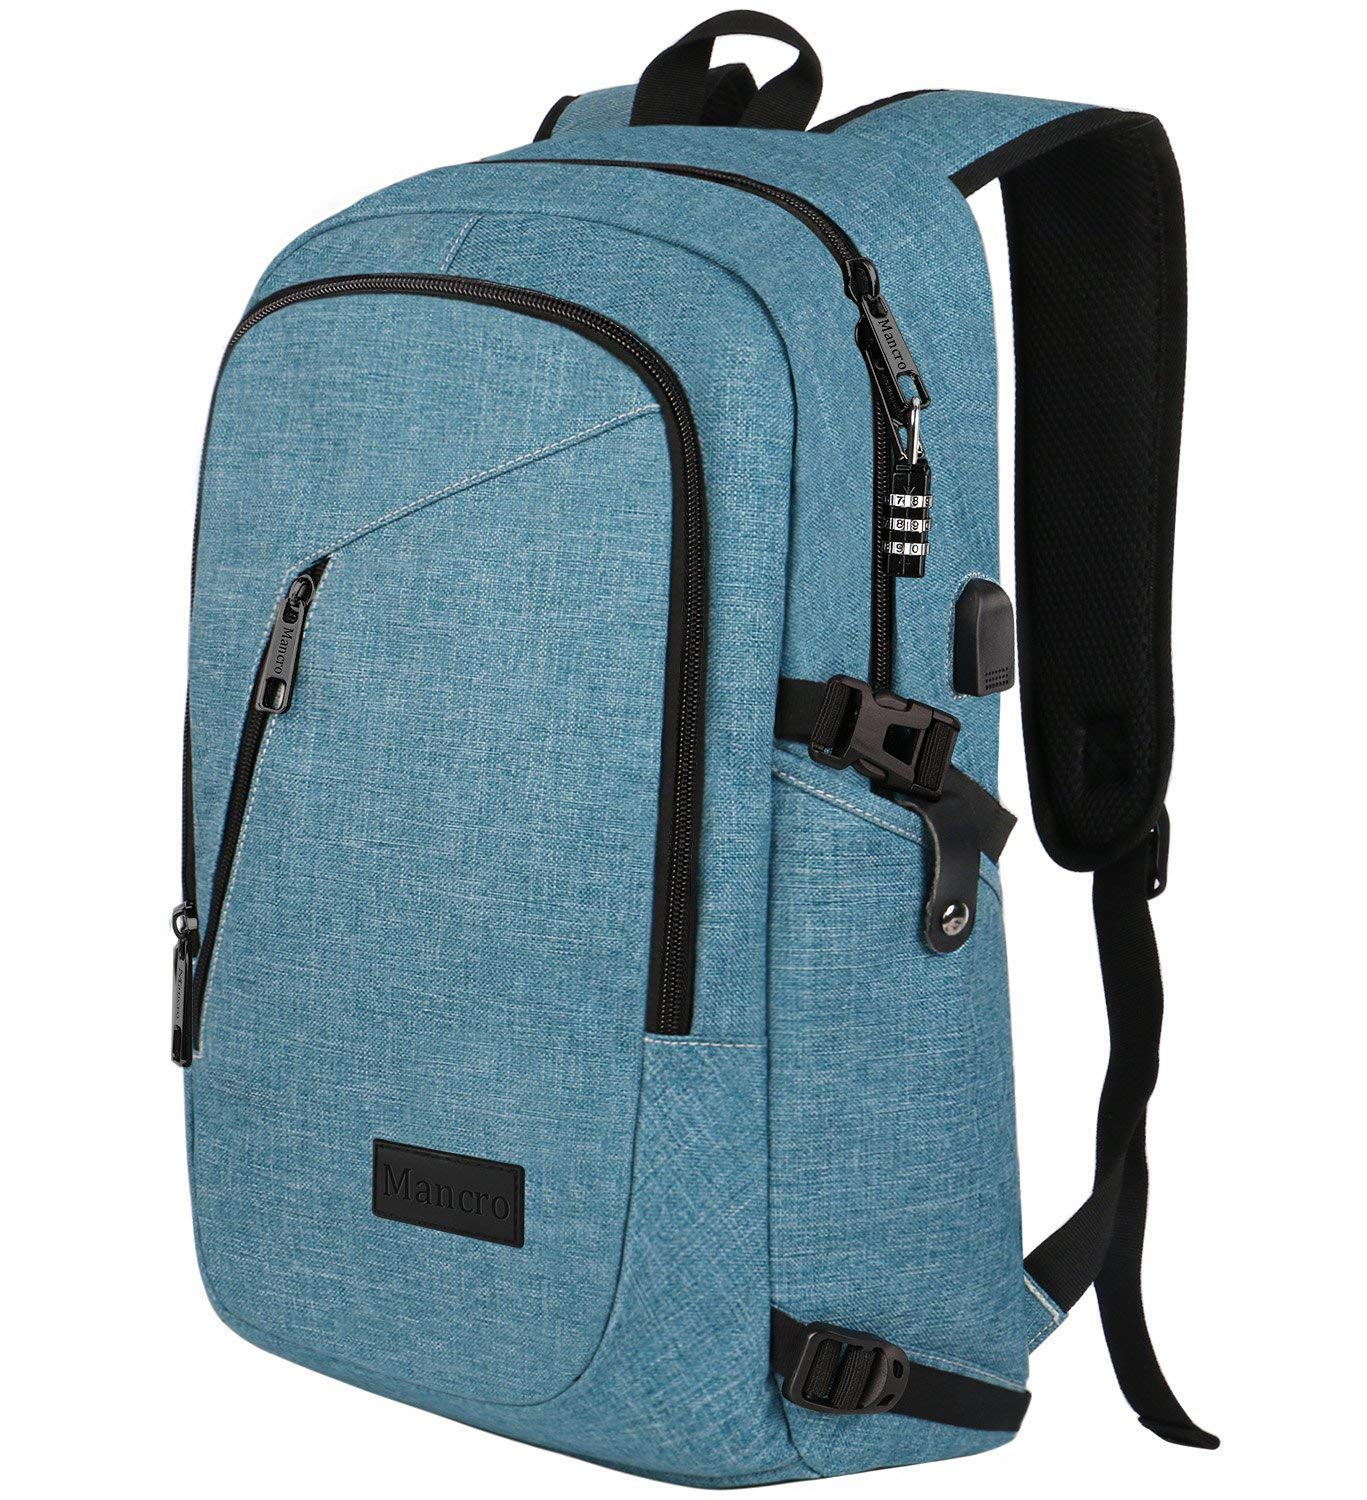 School Backpack for Women, Anti Theft College Student Backpack with USB Port, Slim Lightweight Laptop Backpack, Water Resistant Sturdy Carry On Rucksack for Work Campus Fit 15.6'' Computer (Crest Blue)